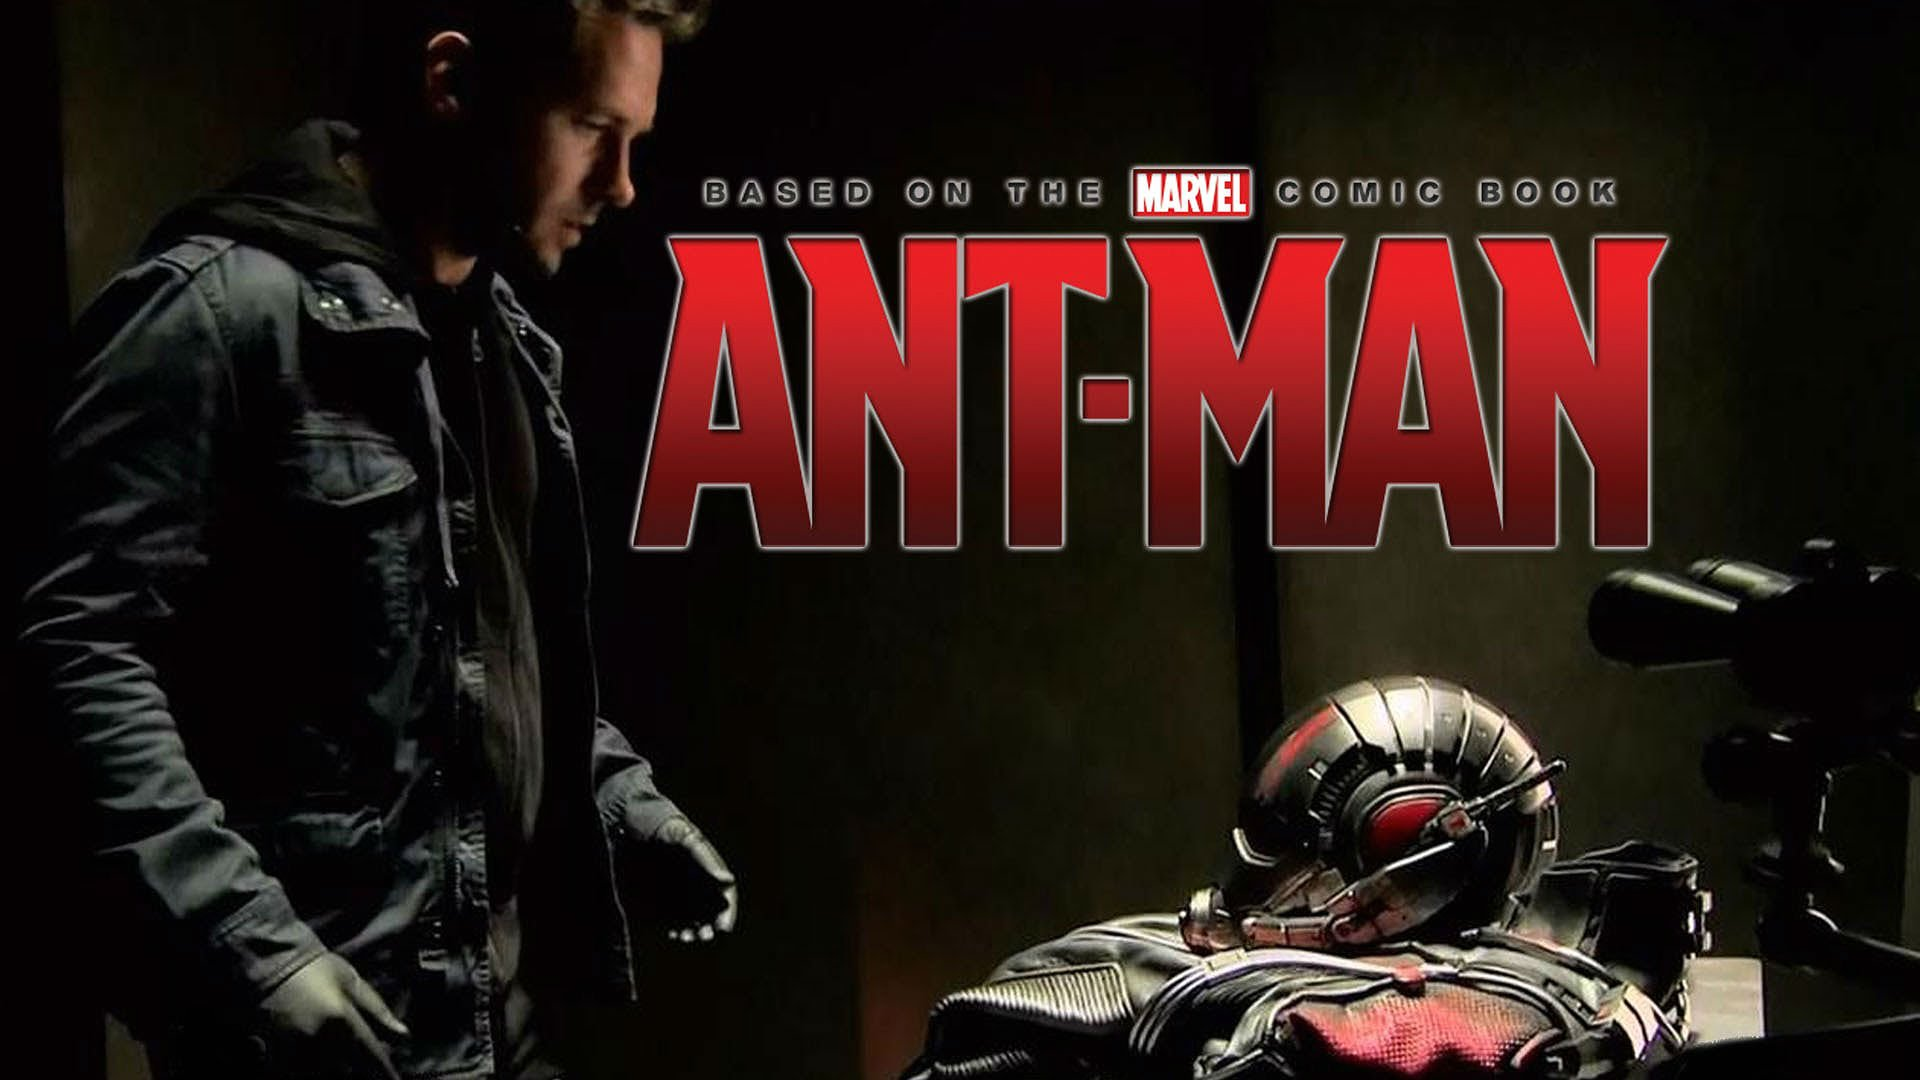 marvel comics ant man heroes hero 1antman disney wallpaper background 1920x1080